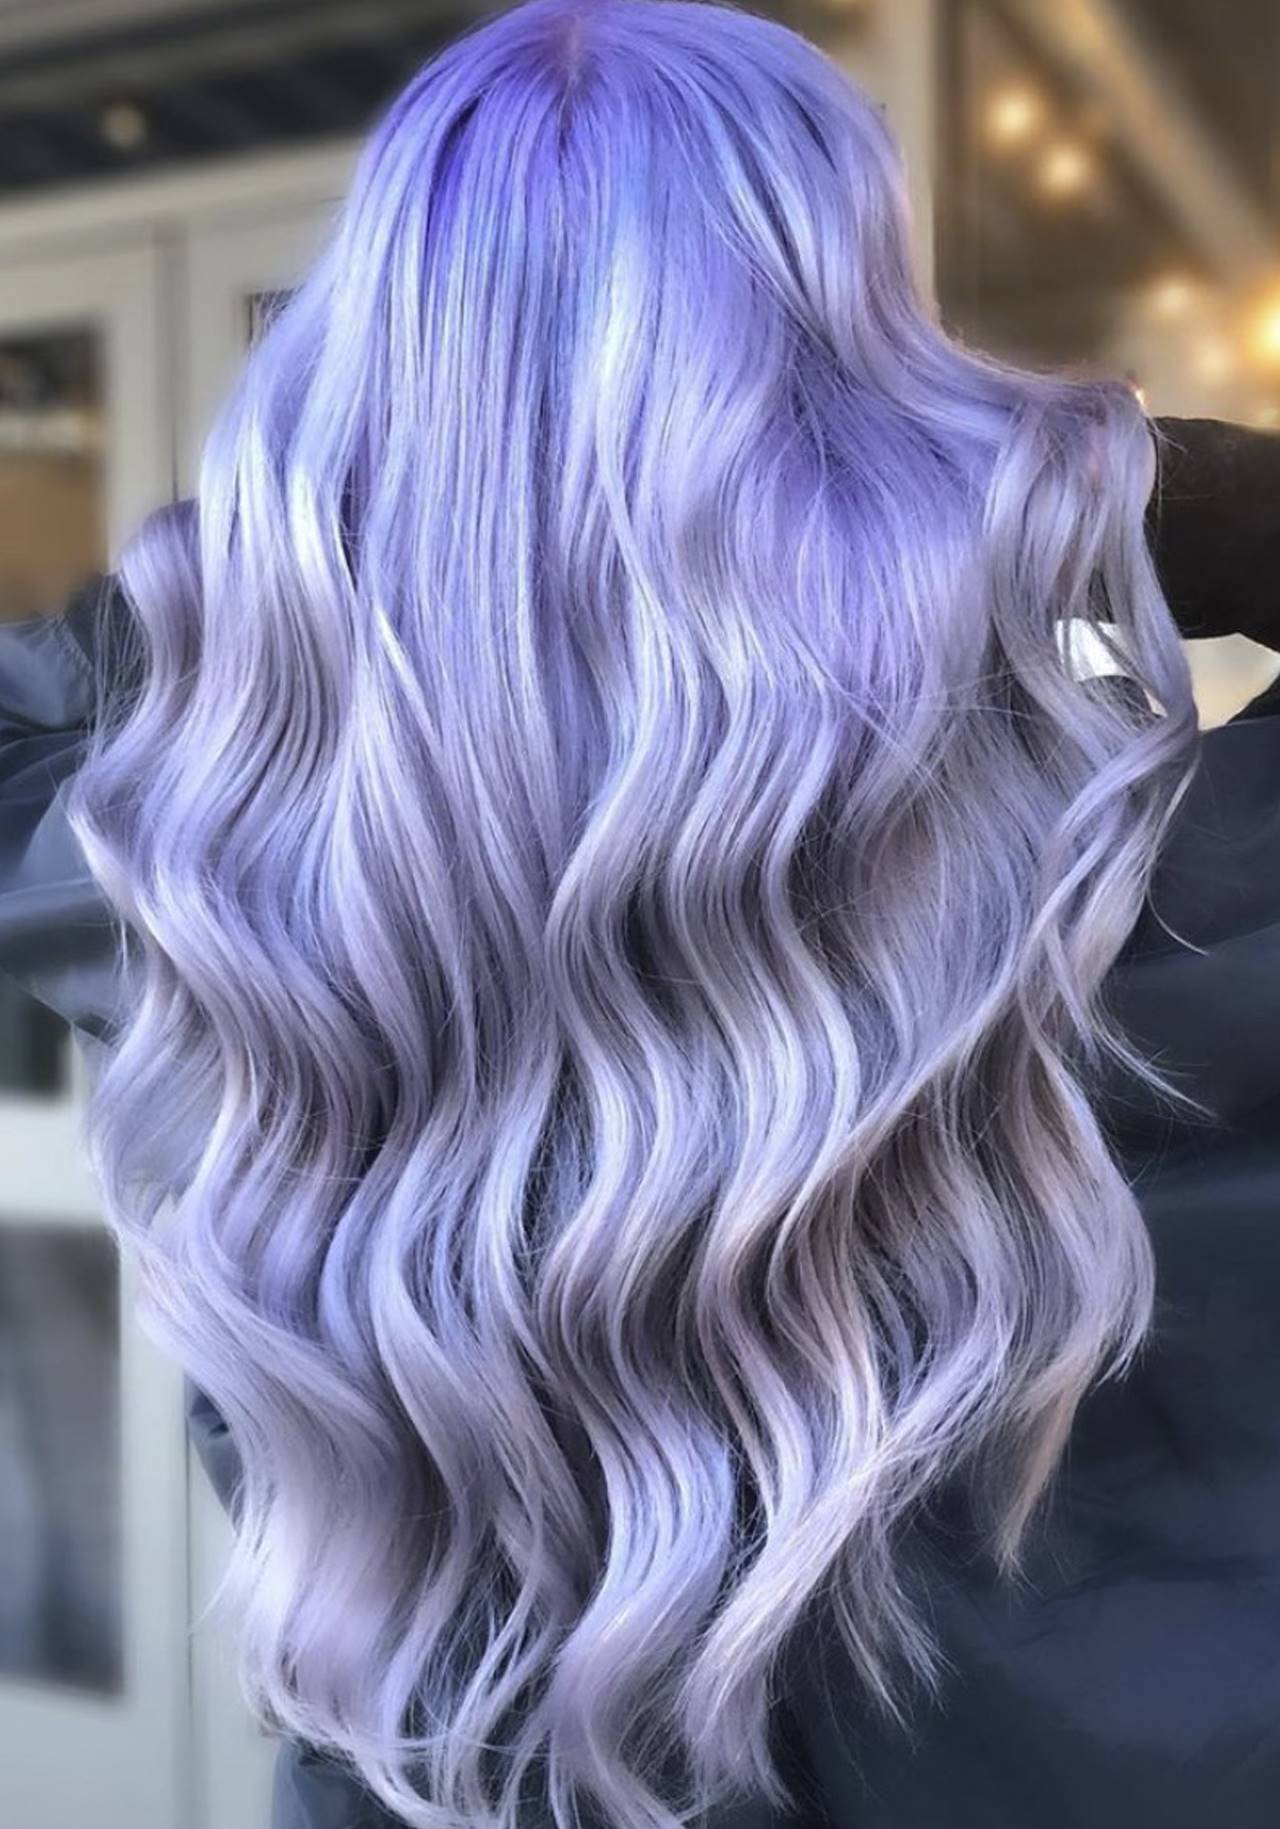 DUSTYPASTELHAIR8